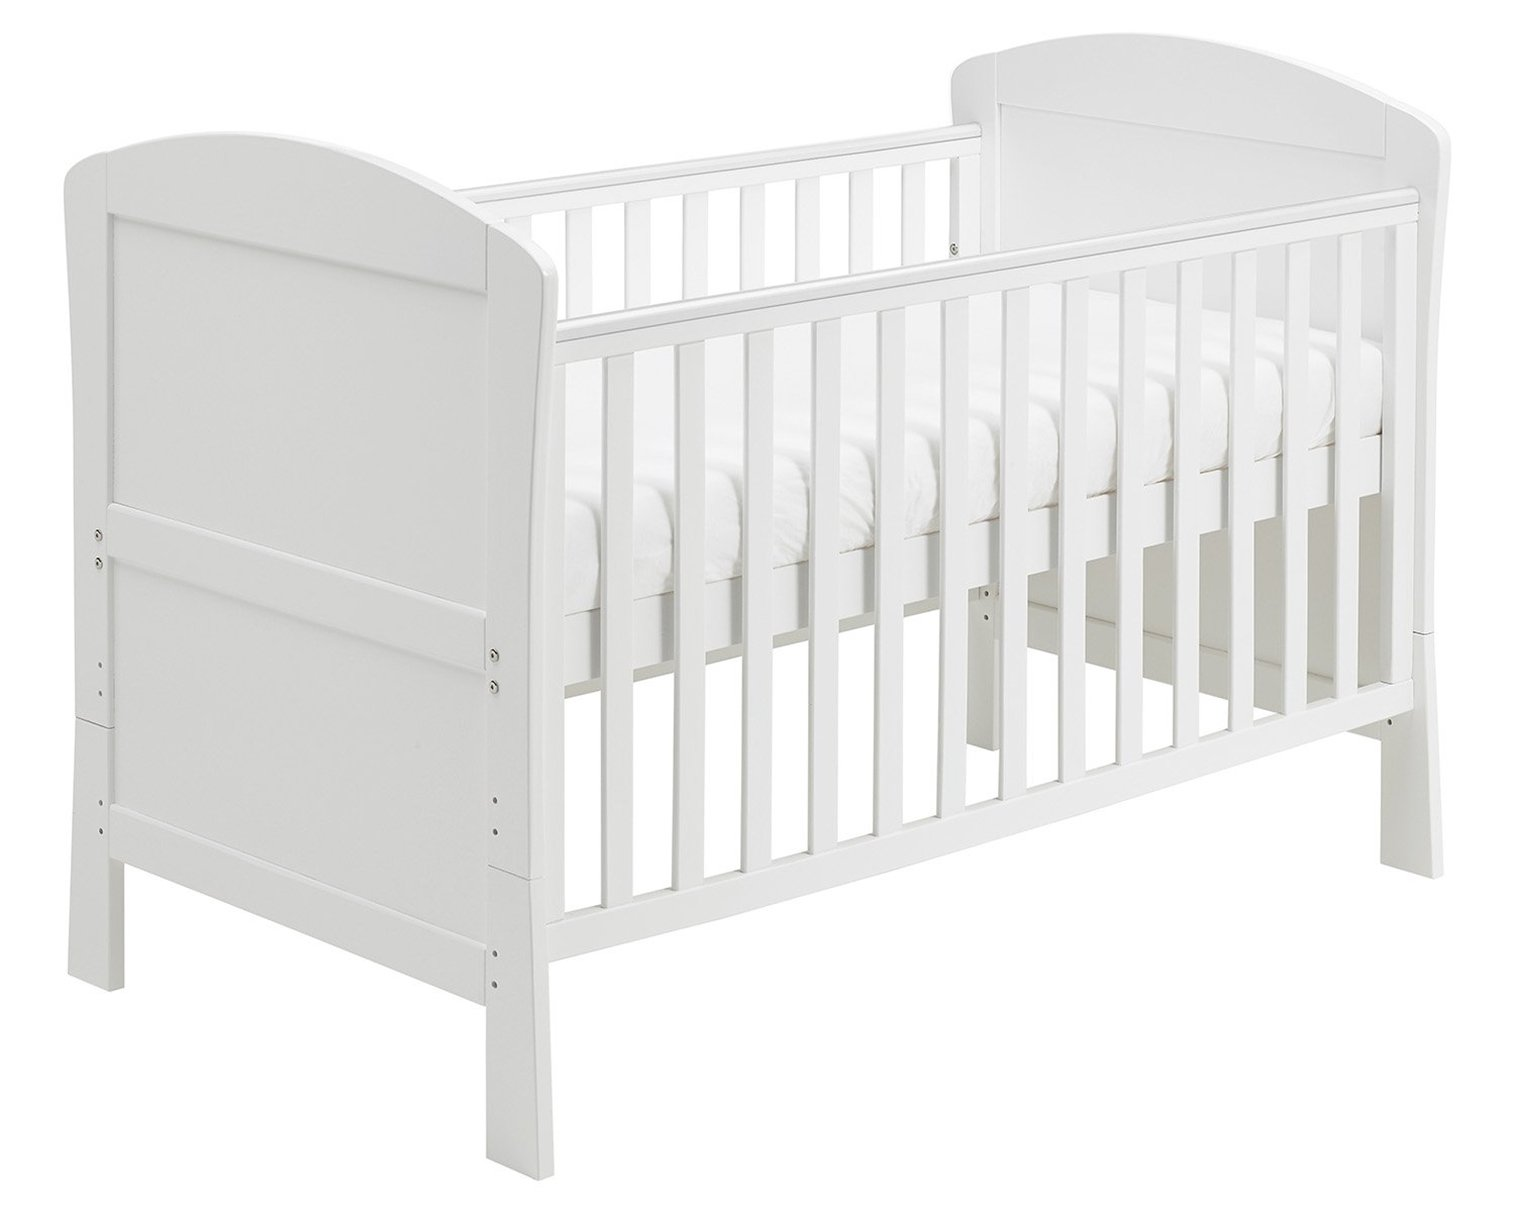 Babymore Aston Drop Side Cot Bed (White) with Foam Mattress  2 protective teething rails 3 base heights 1 drop side, 1 fixed side 1